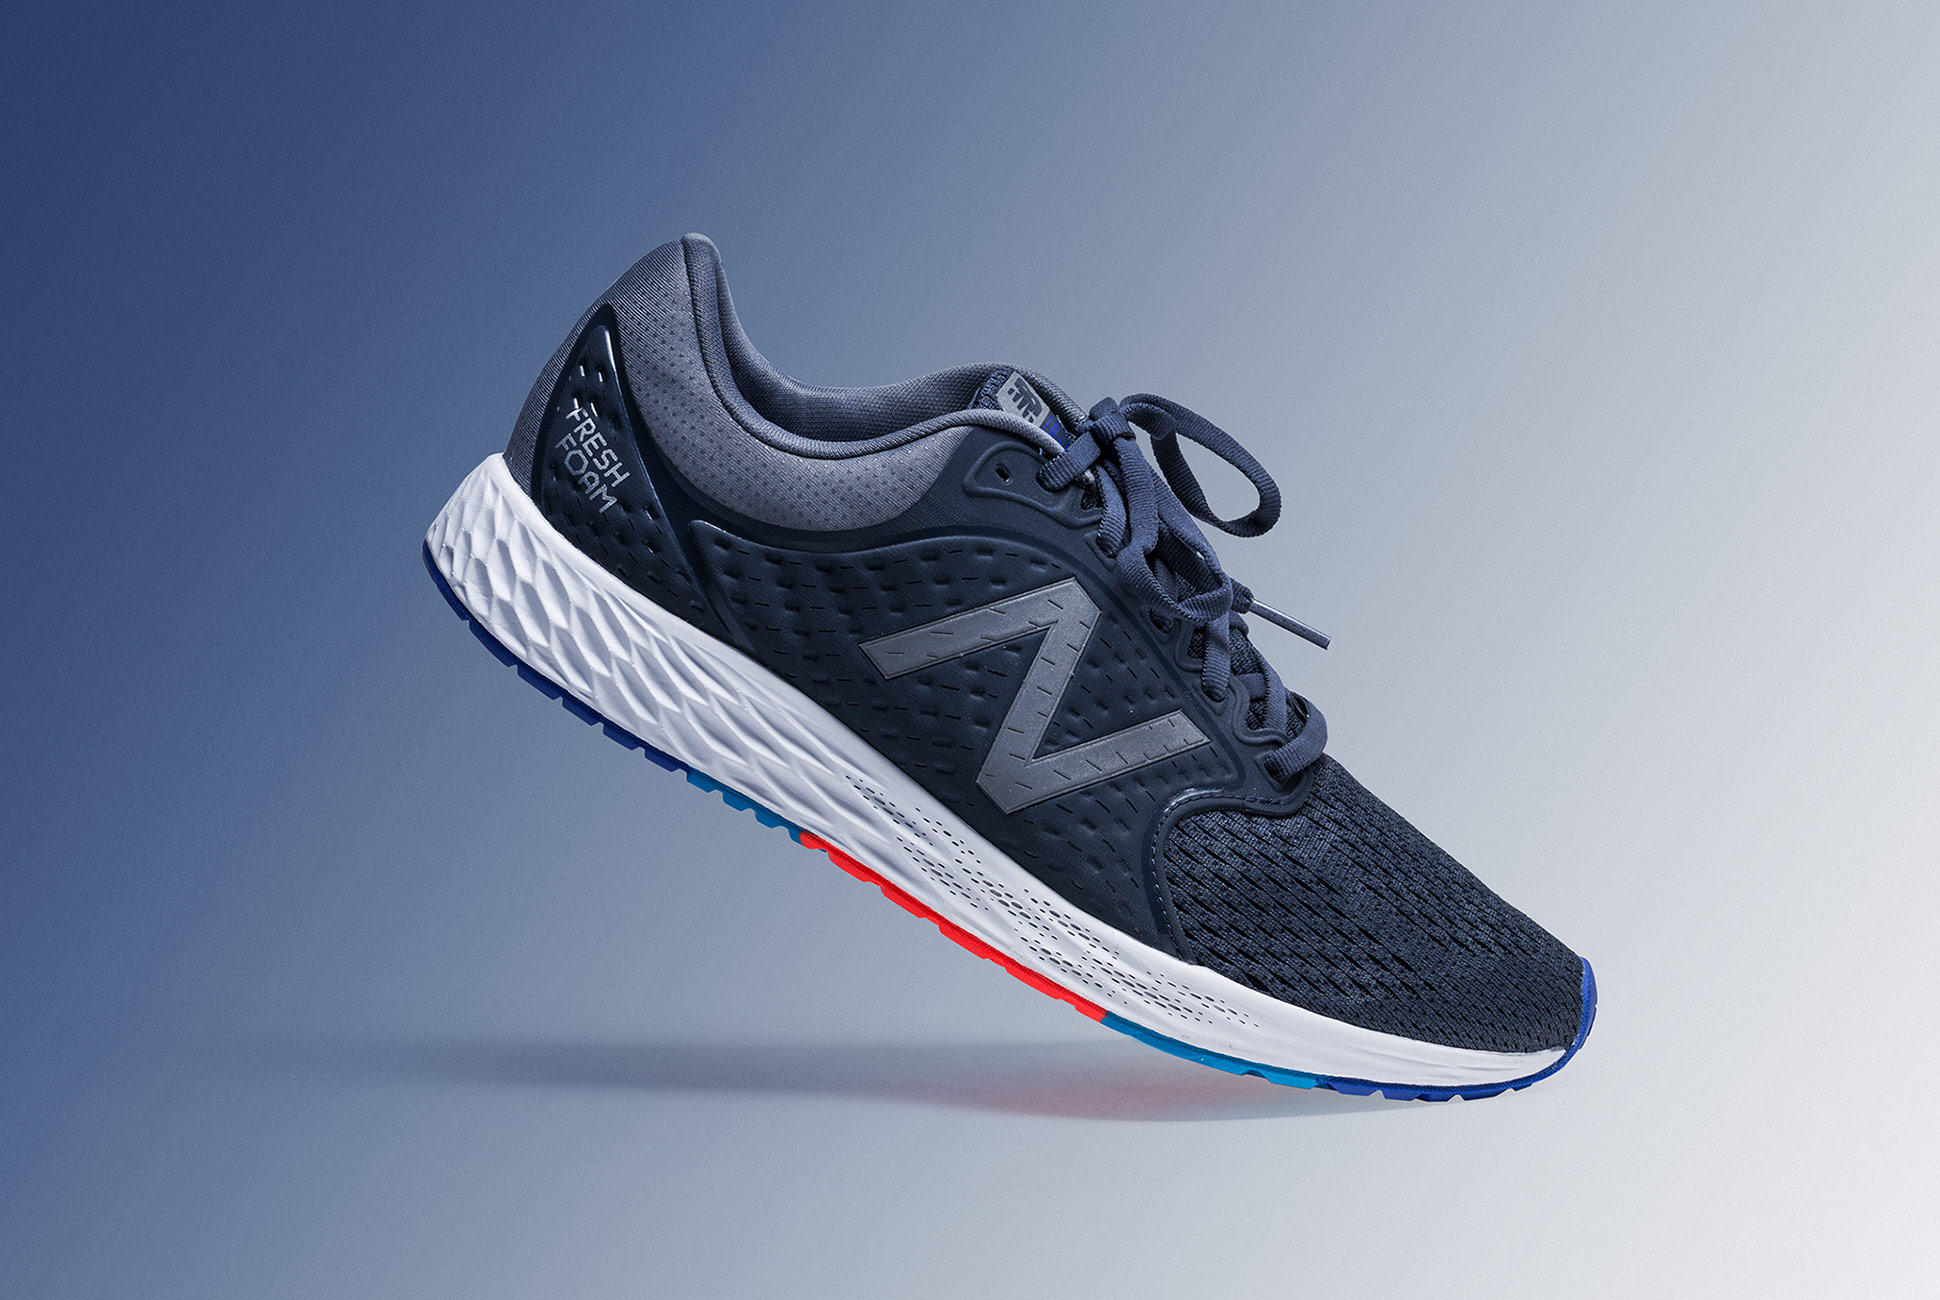 11 Best Women's Stability Shoes for 2018